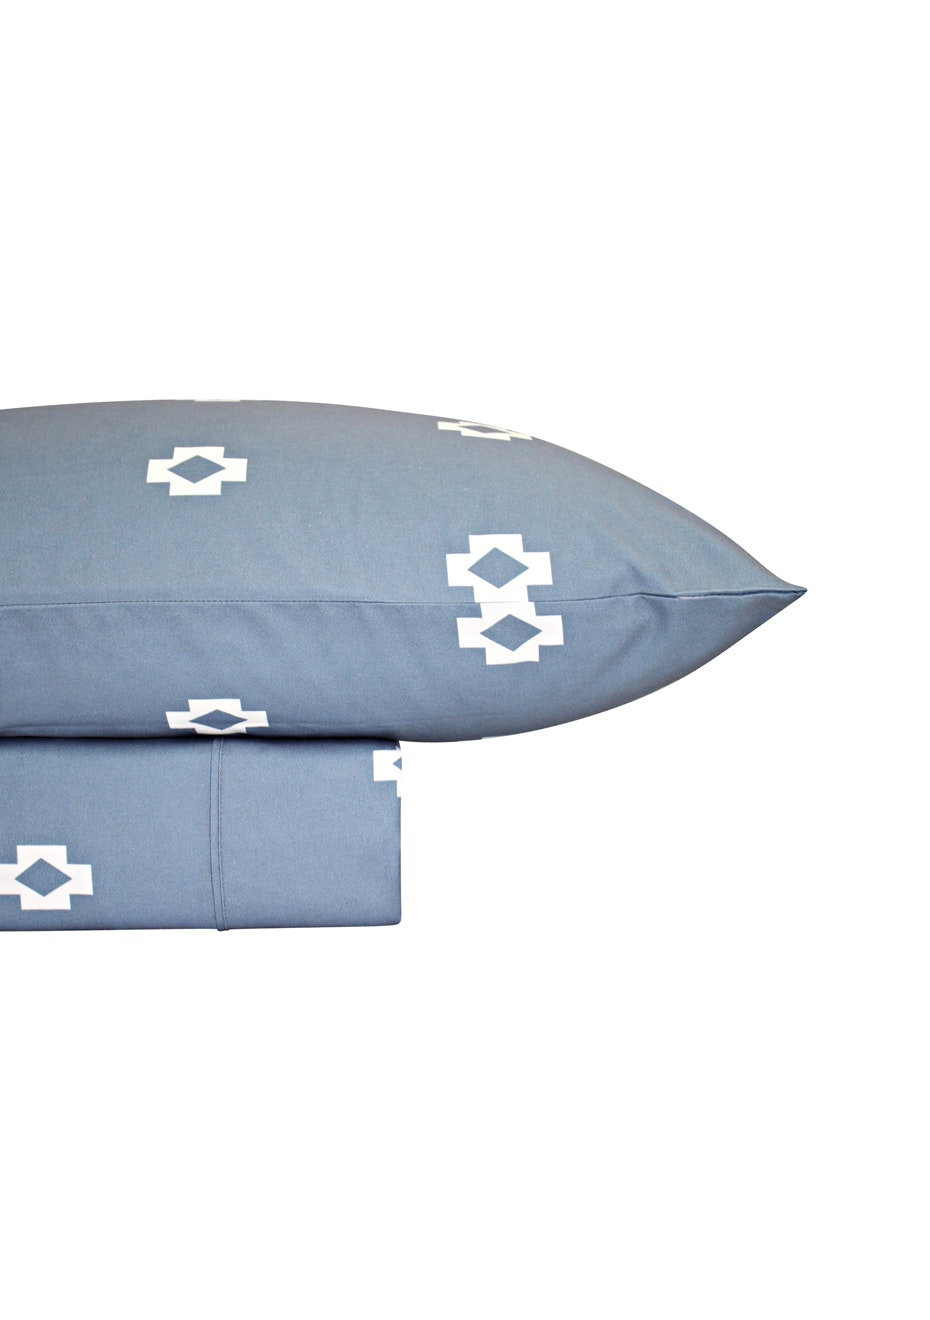 Thermal Flannel Sheet Sets - Tribal Design - Ice - Queen Bed